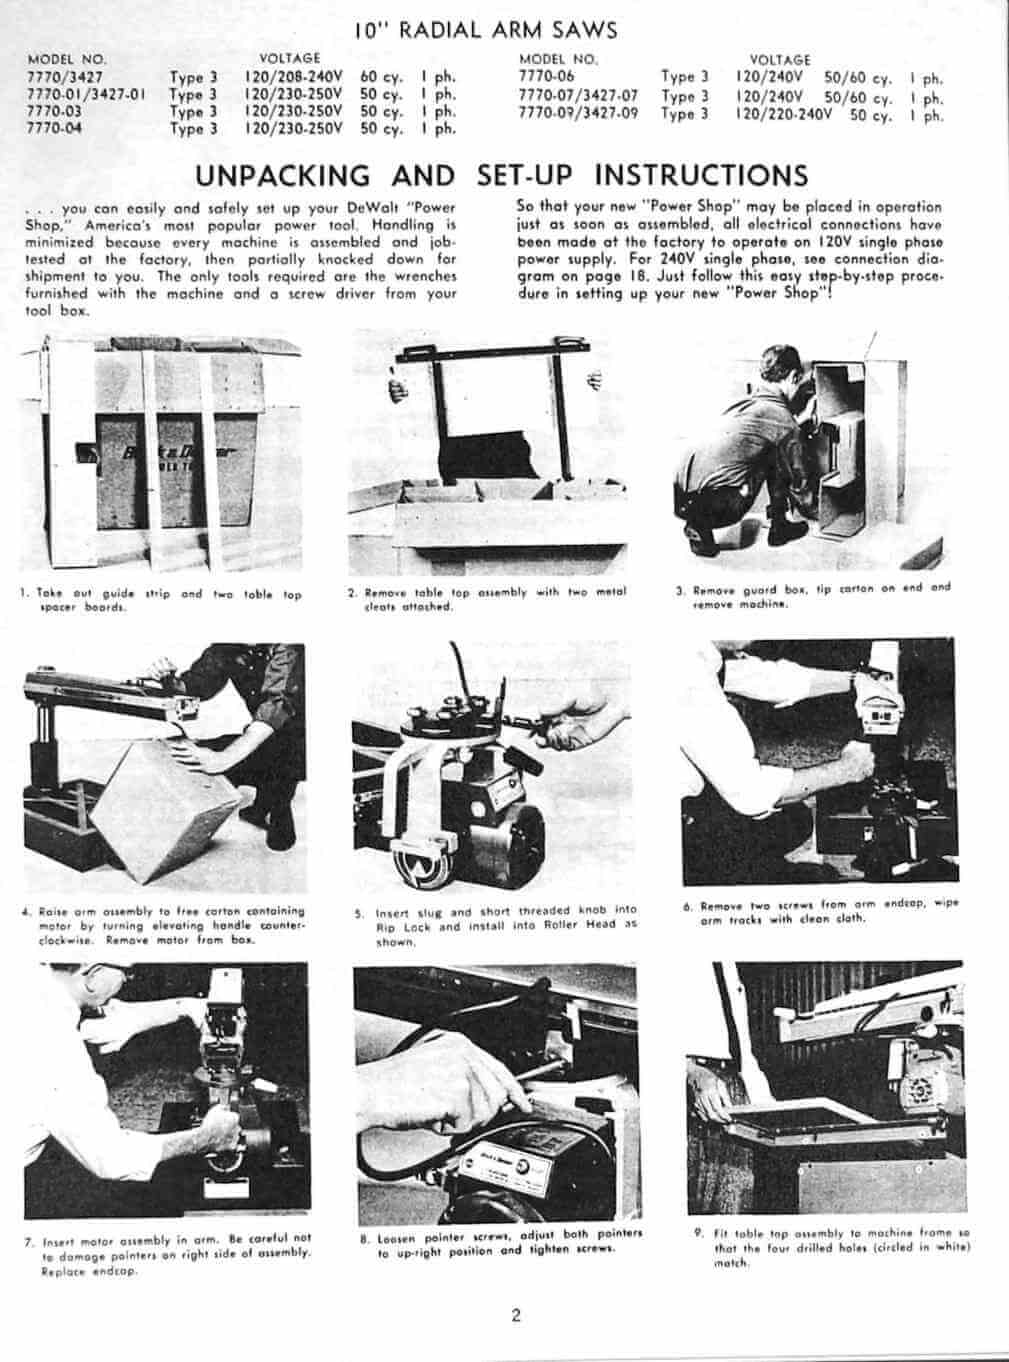 1026a dewalt 7770 10 inch radial arm saw owner's instructions and parts wiring diagram for craftsman radial arm saw at crackthecode.co